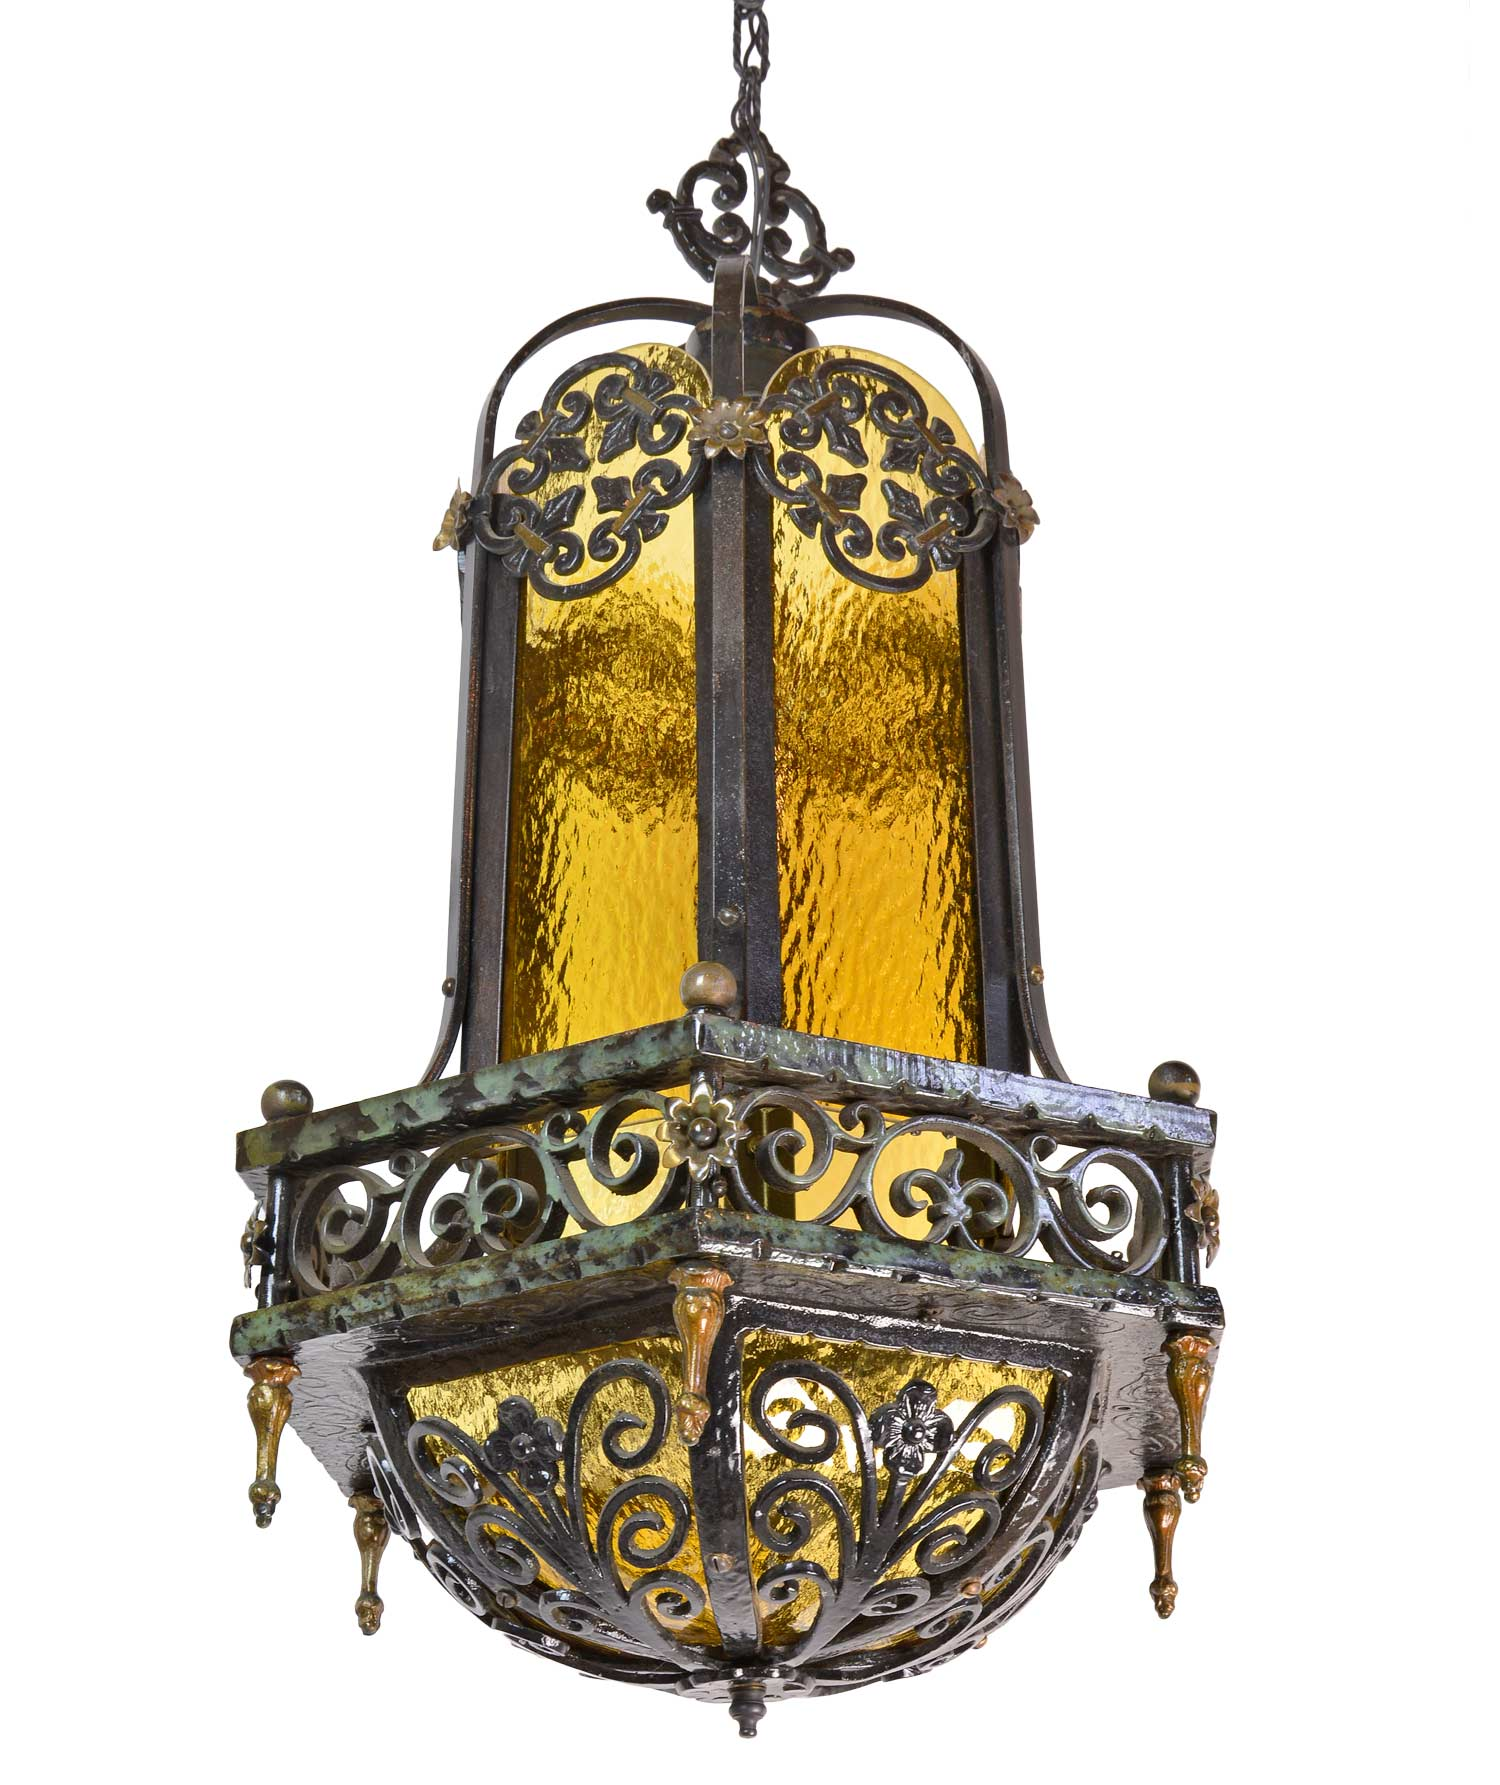 45961-bent-amber-glass-and-iron-chandelier-with-floral-details-angle.jpg